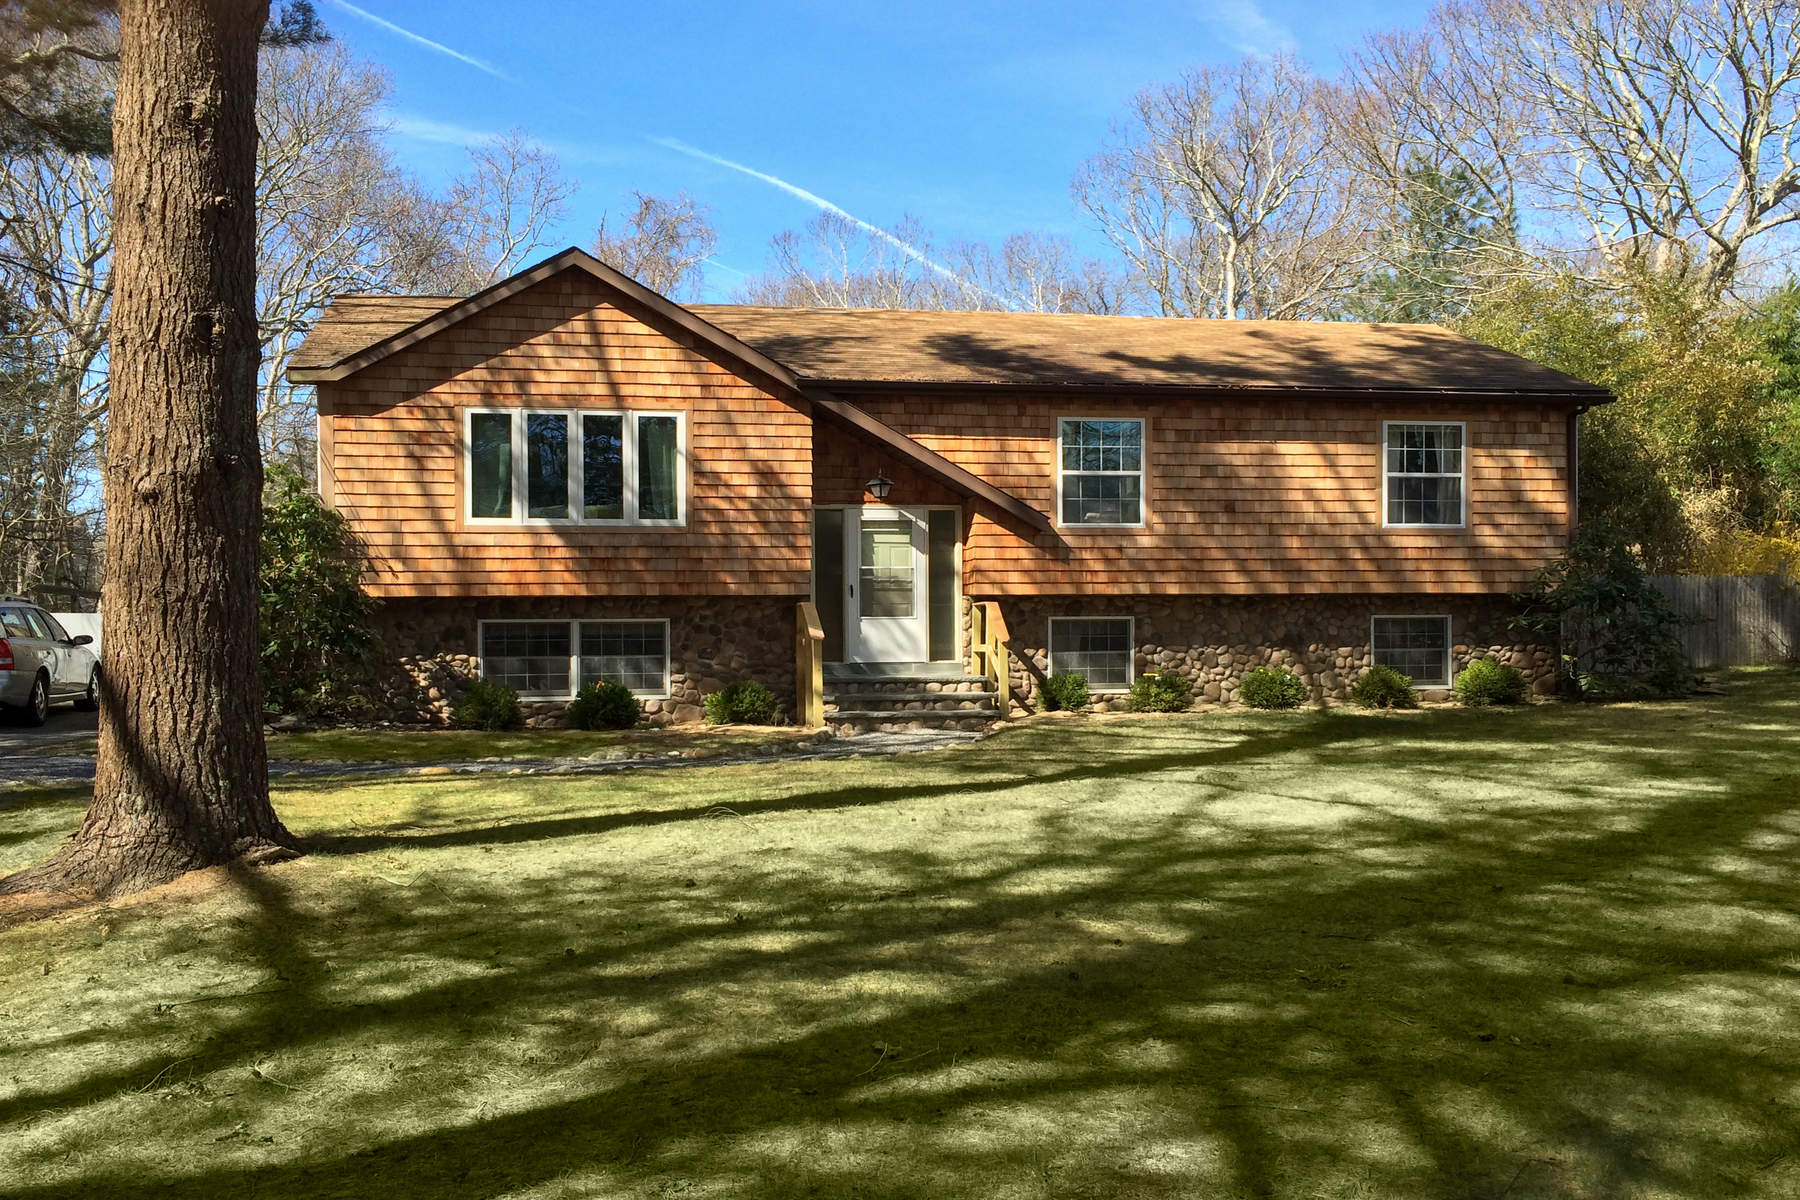 Single Family Home for Rent at Just Outside Of East Hampton Village 34 Wireless Road East Hampton, New York 11937 United States